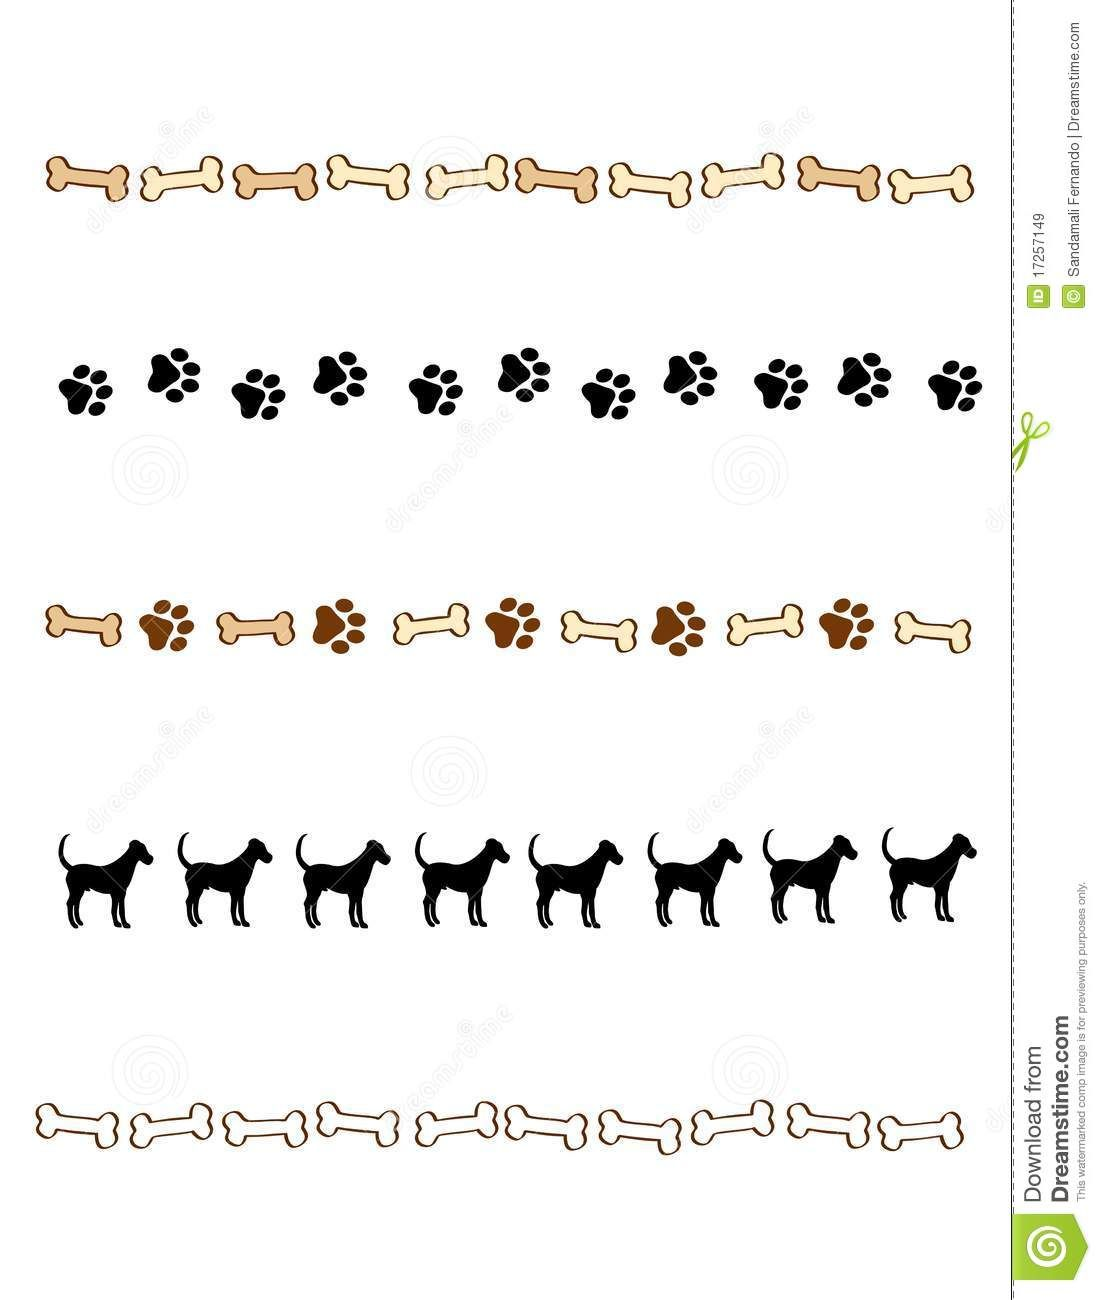 Paw Prints Border Divider Royalty Free Stock Images Image